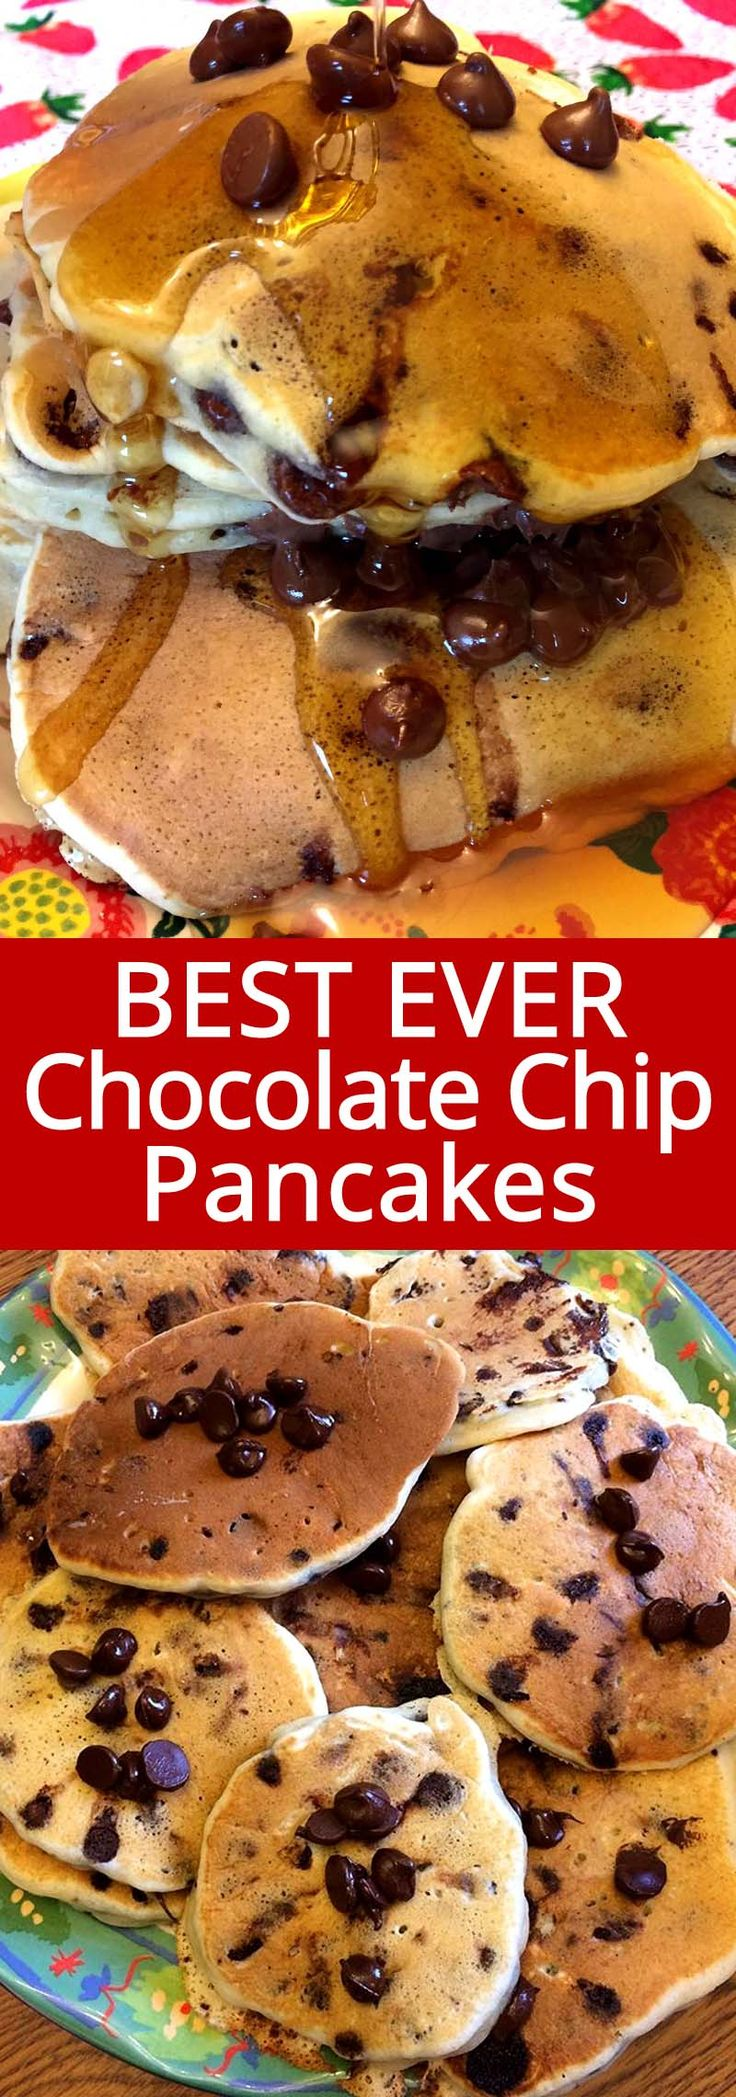 These homemade chocolate chip pancakes are amazing! This chocolate chip pancakes recipe is so easy and made from scratch! I can eat the whole batch of these pancakes in one sitting! #pancakes #chocolatechip #breakfast